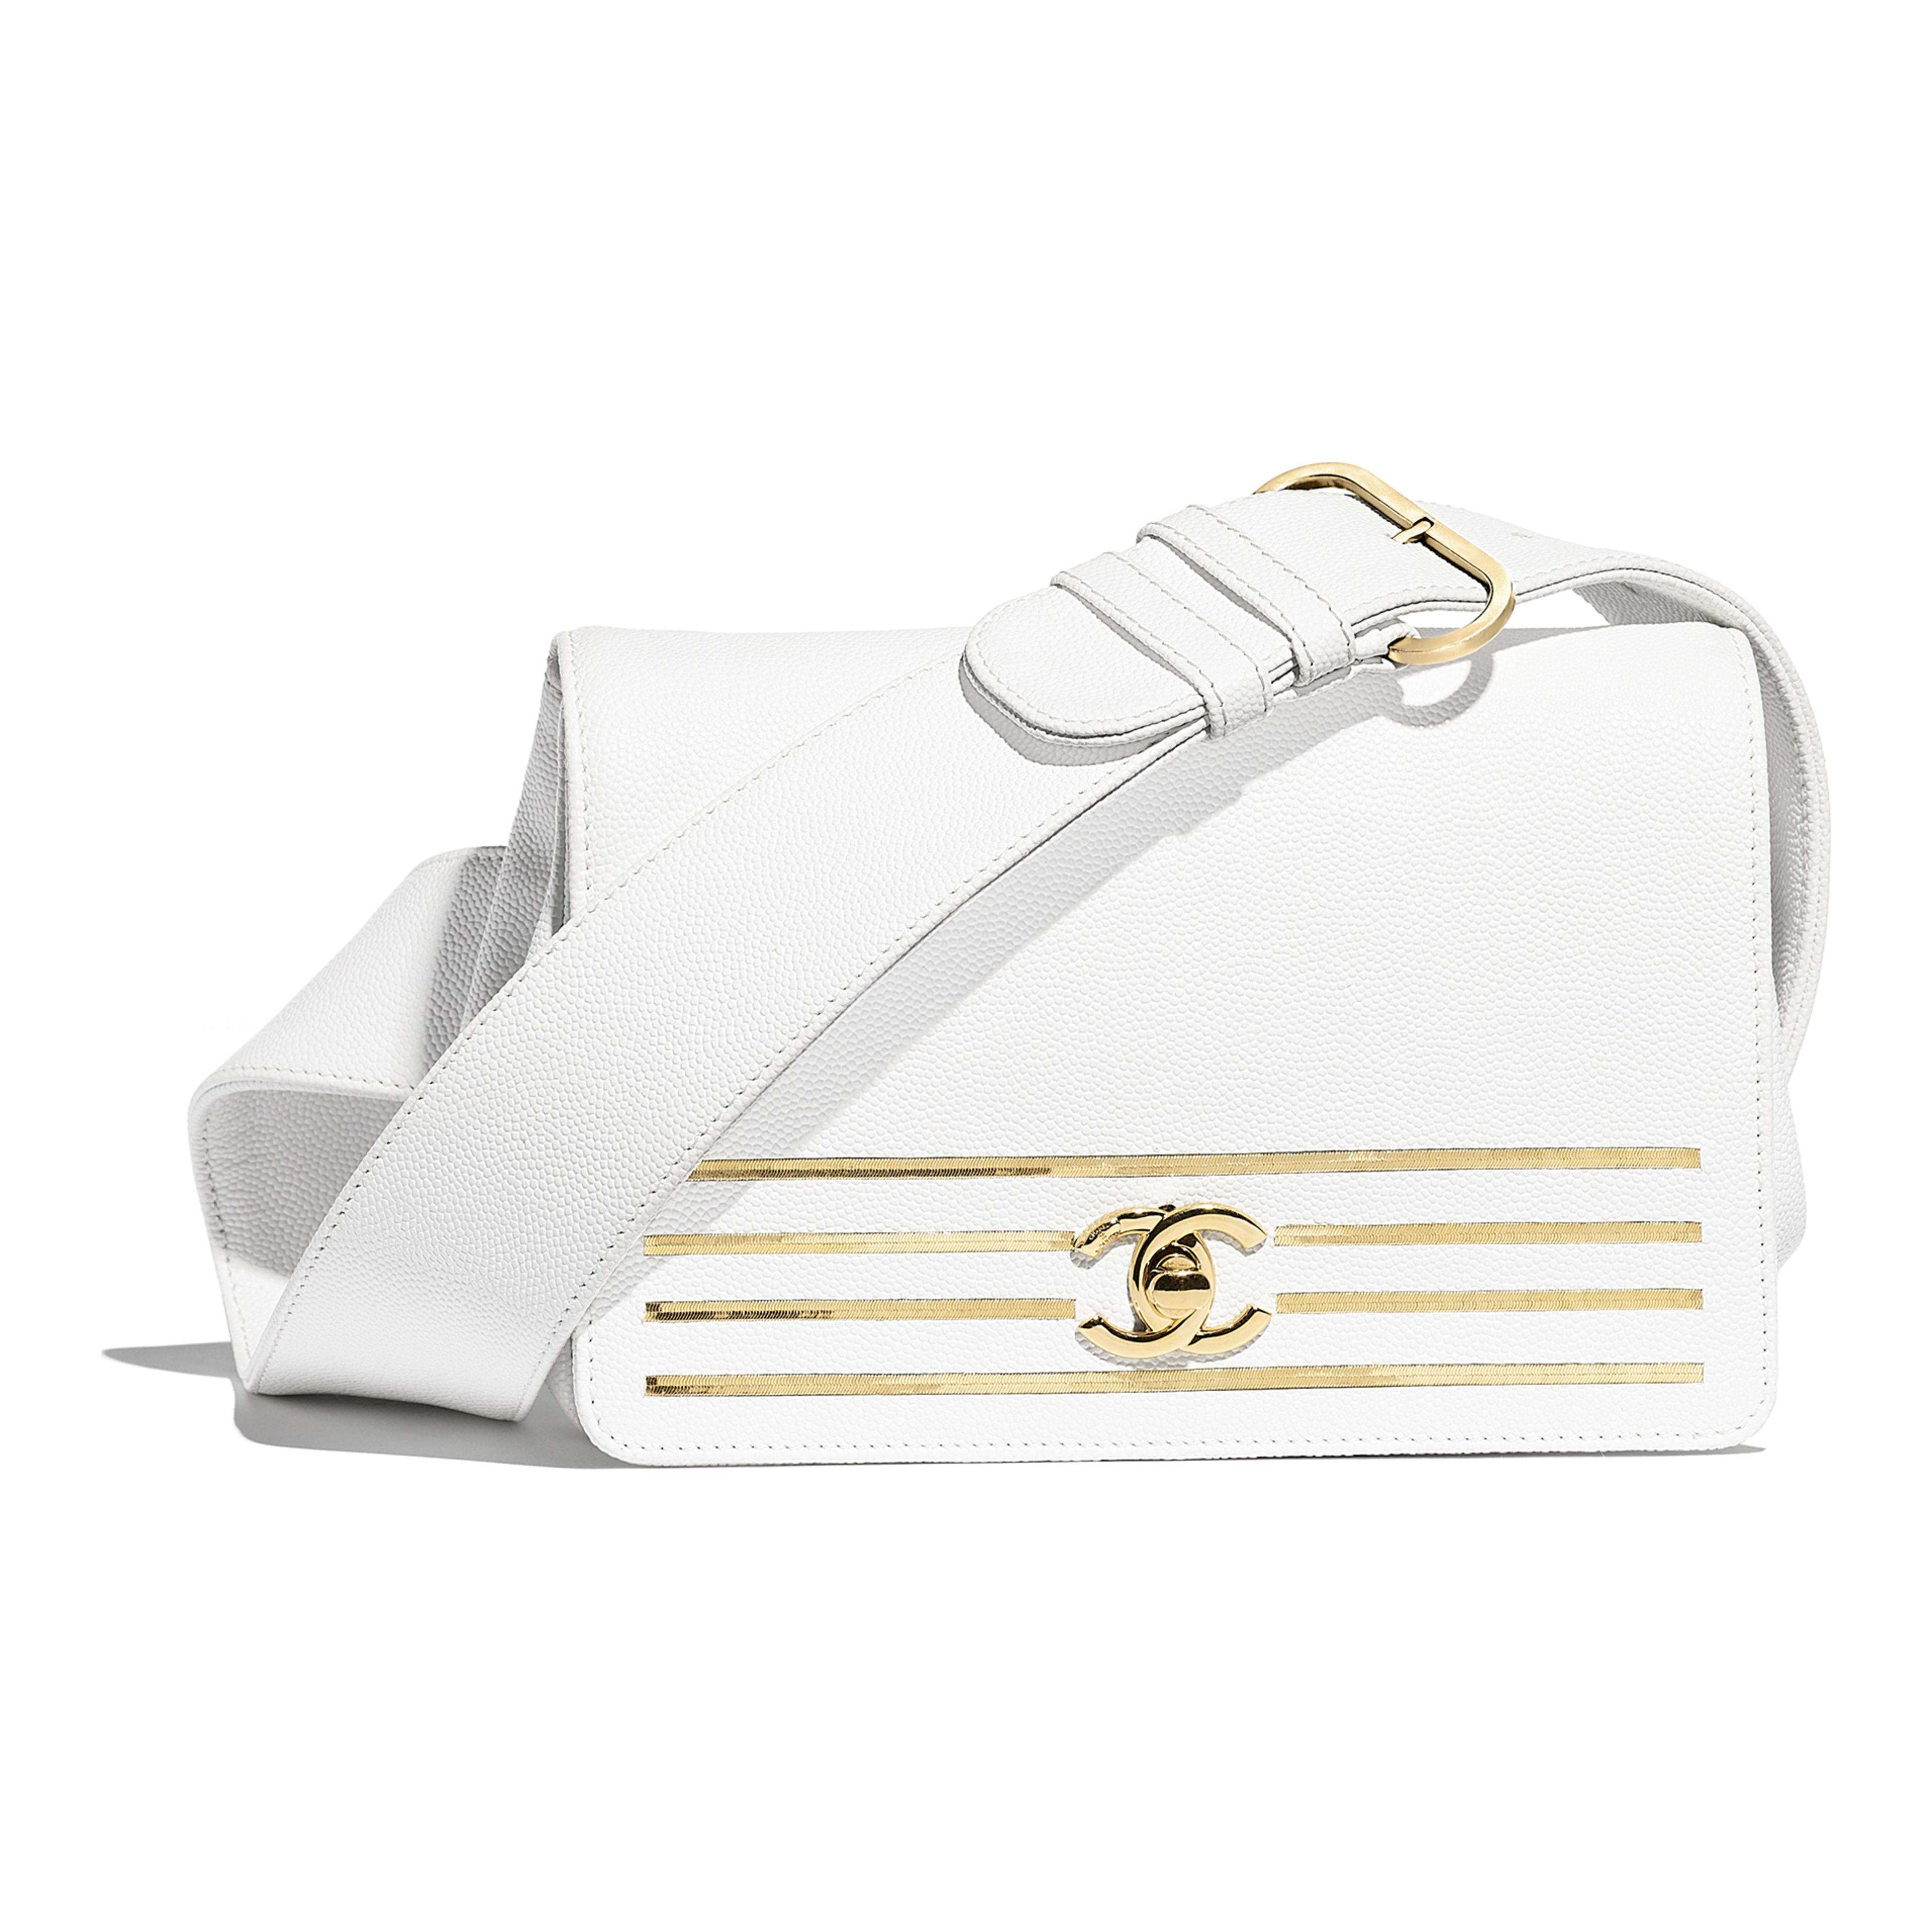 c4877d0cf39c Embroidered Grained Calfskin   Gold-Tone Metal White Waist Bag